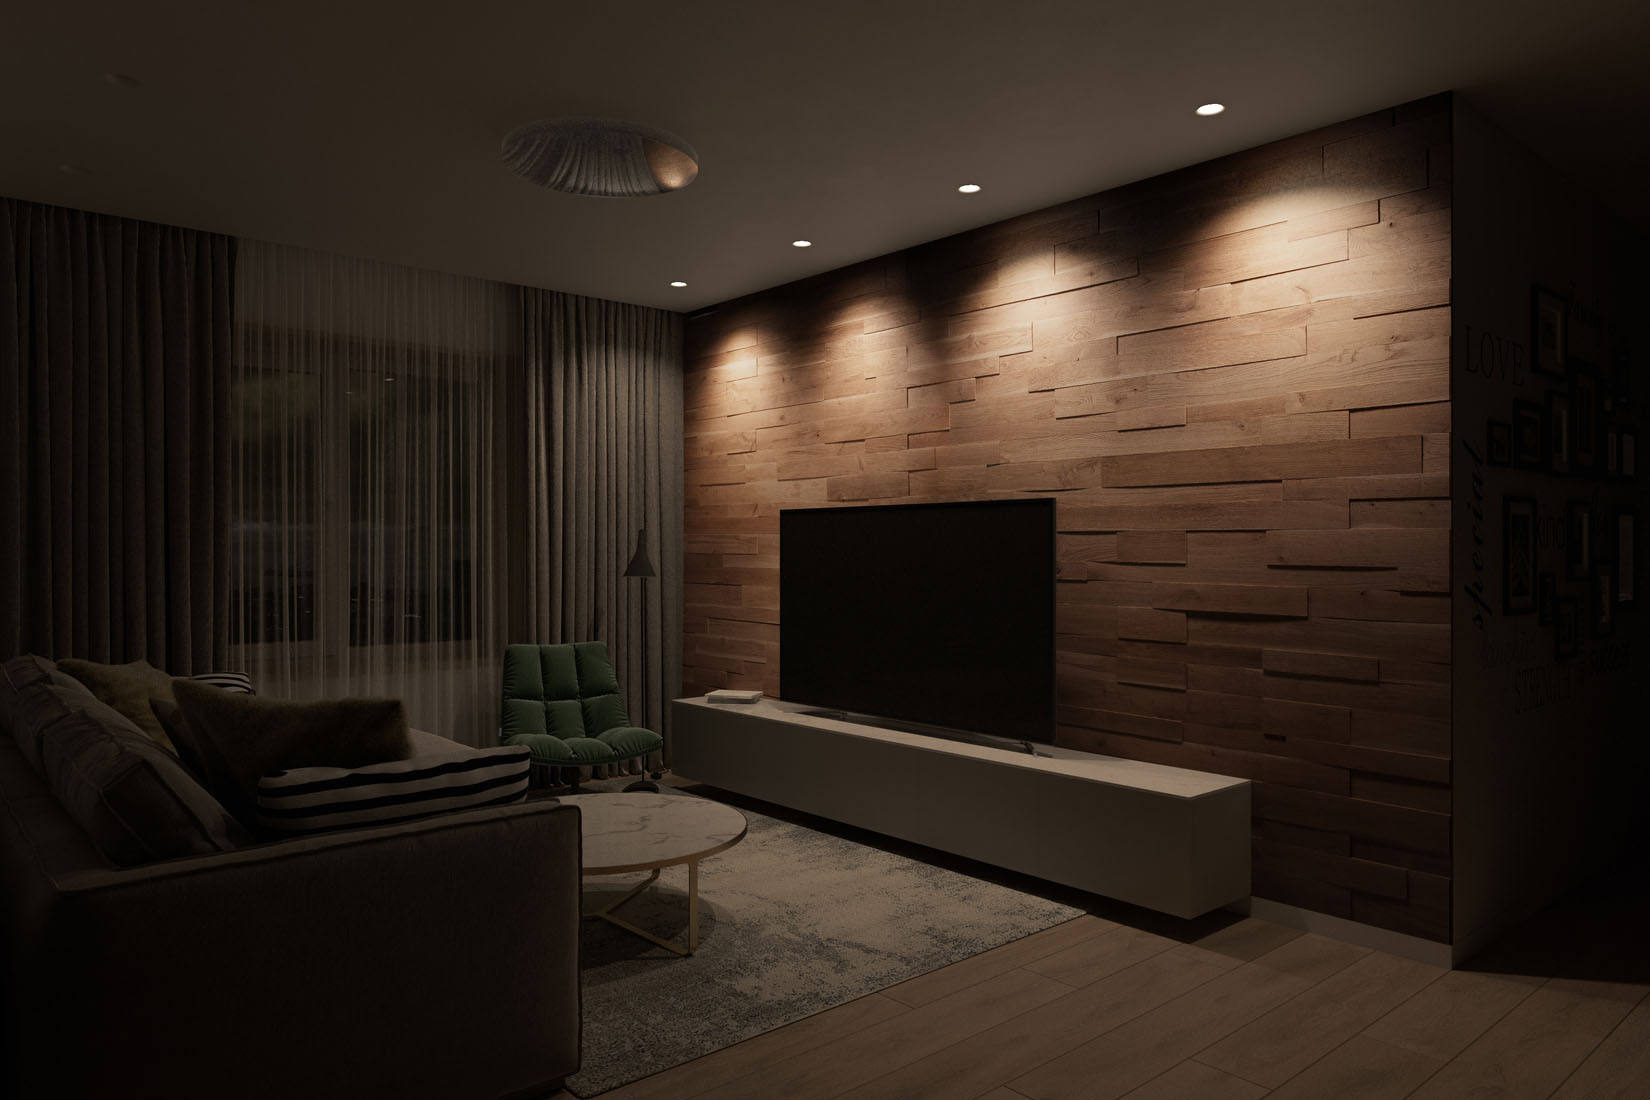 oak wall panel in 3 different lighting